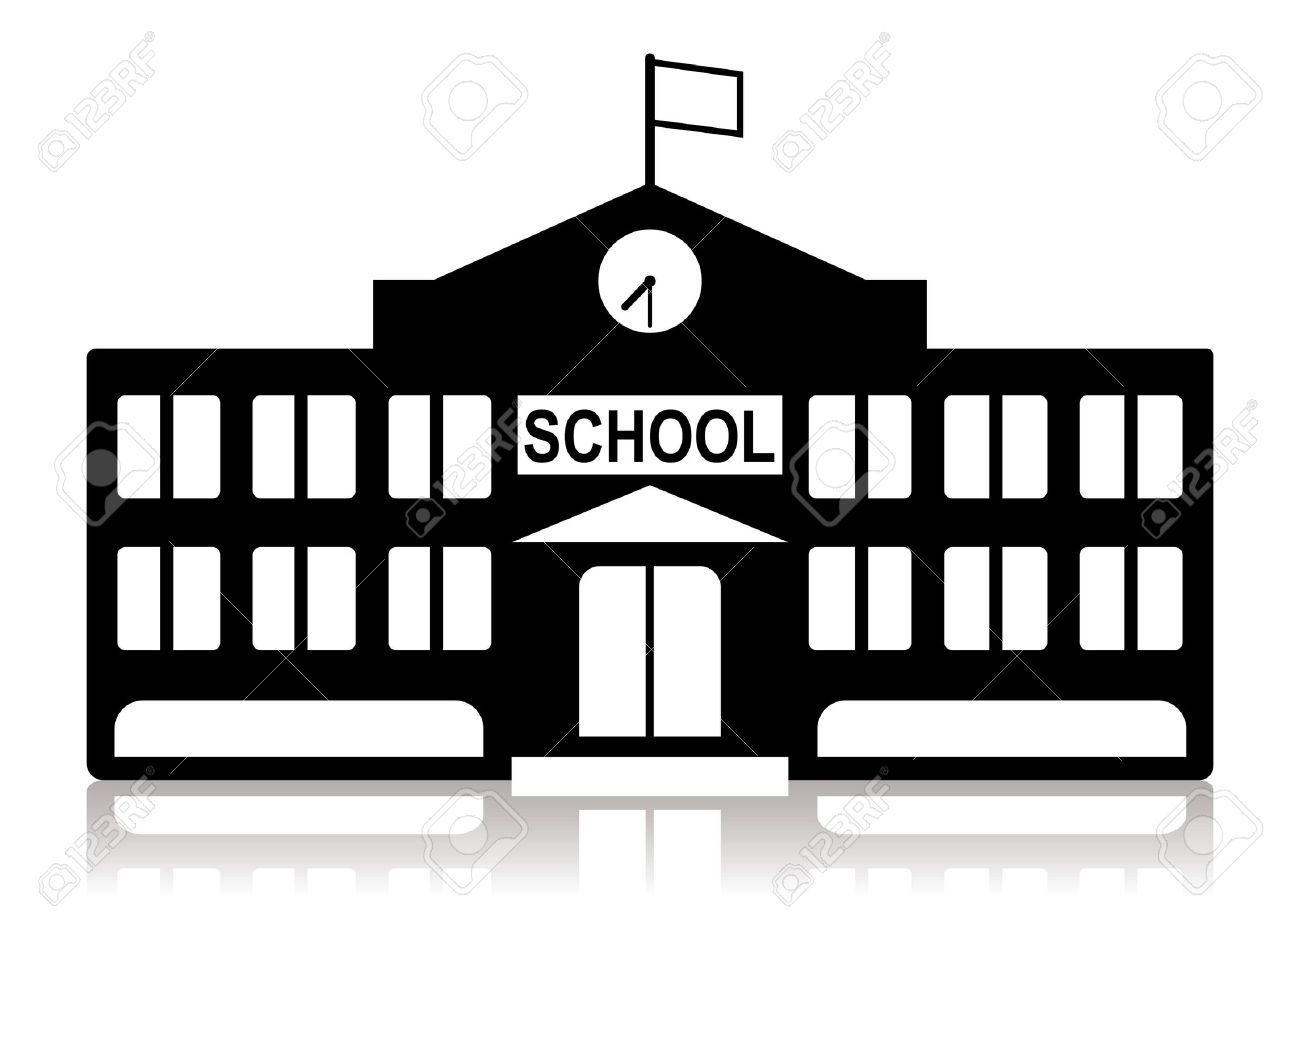 library building clipart black and white - Google Search ...